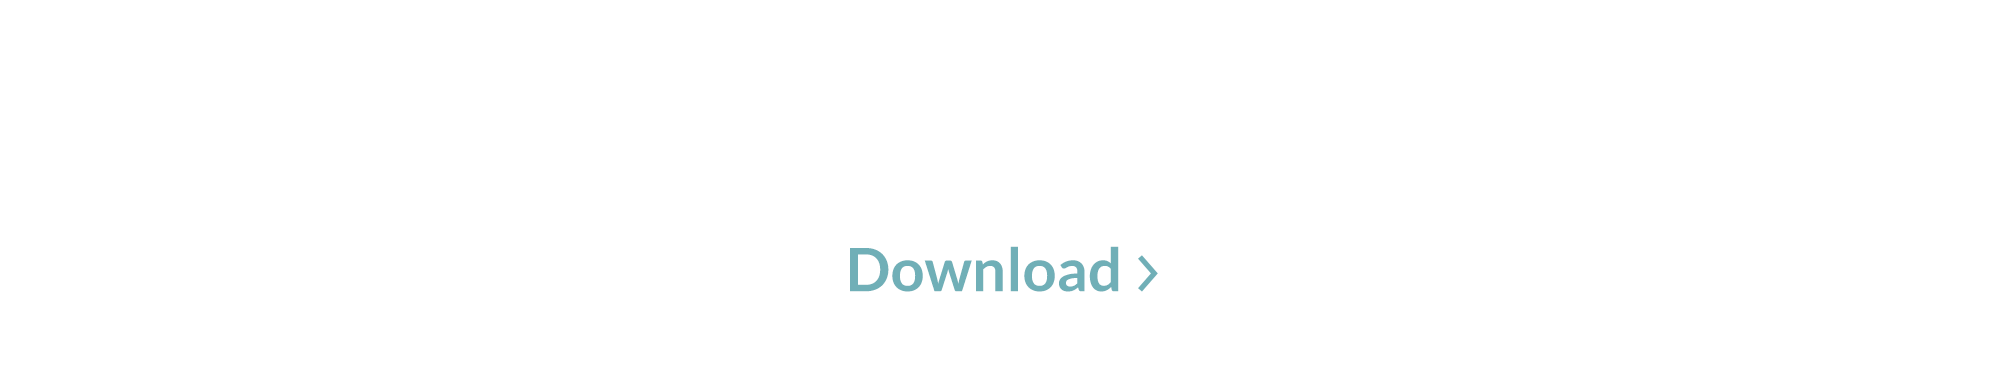 Download the Guide to Moving Into a Senior Living Home